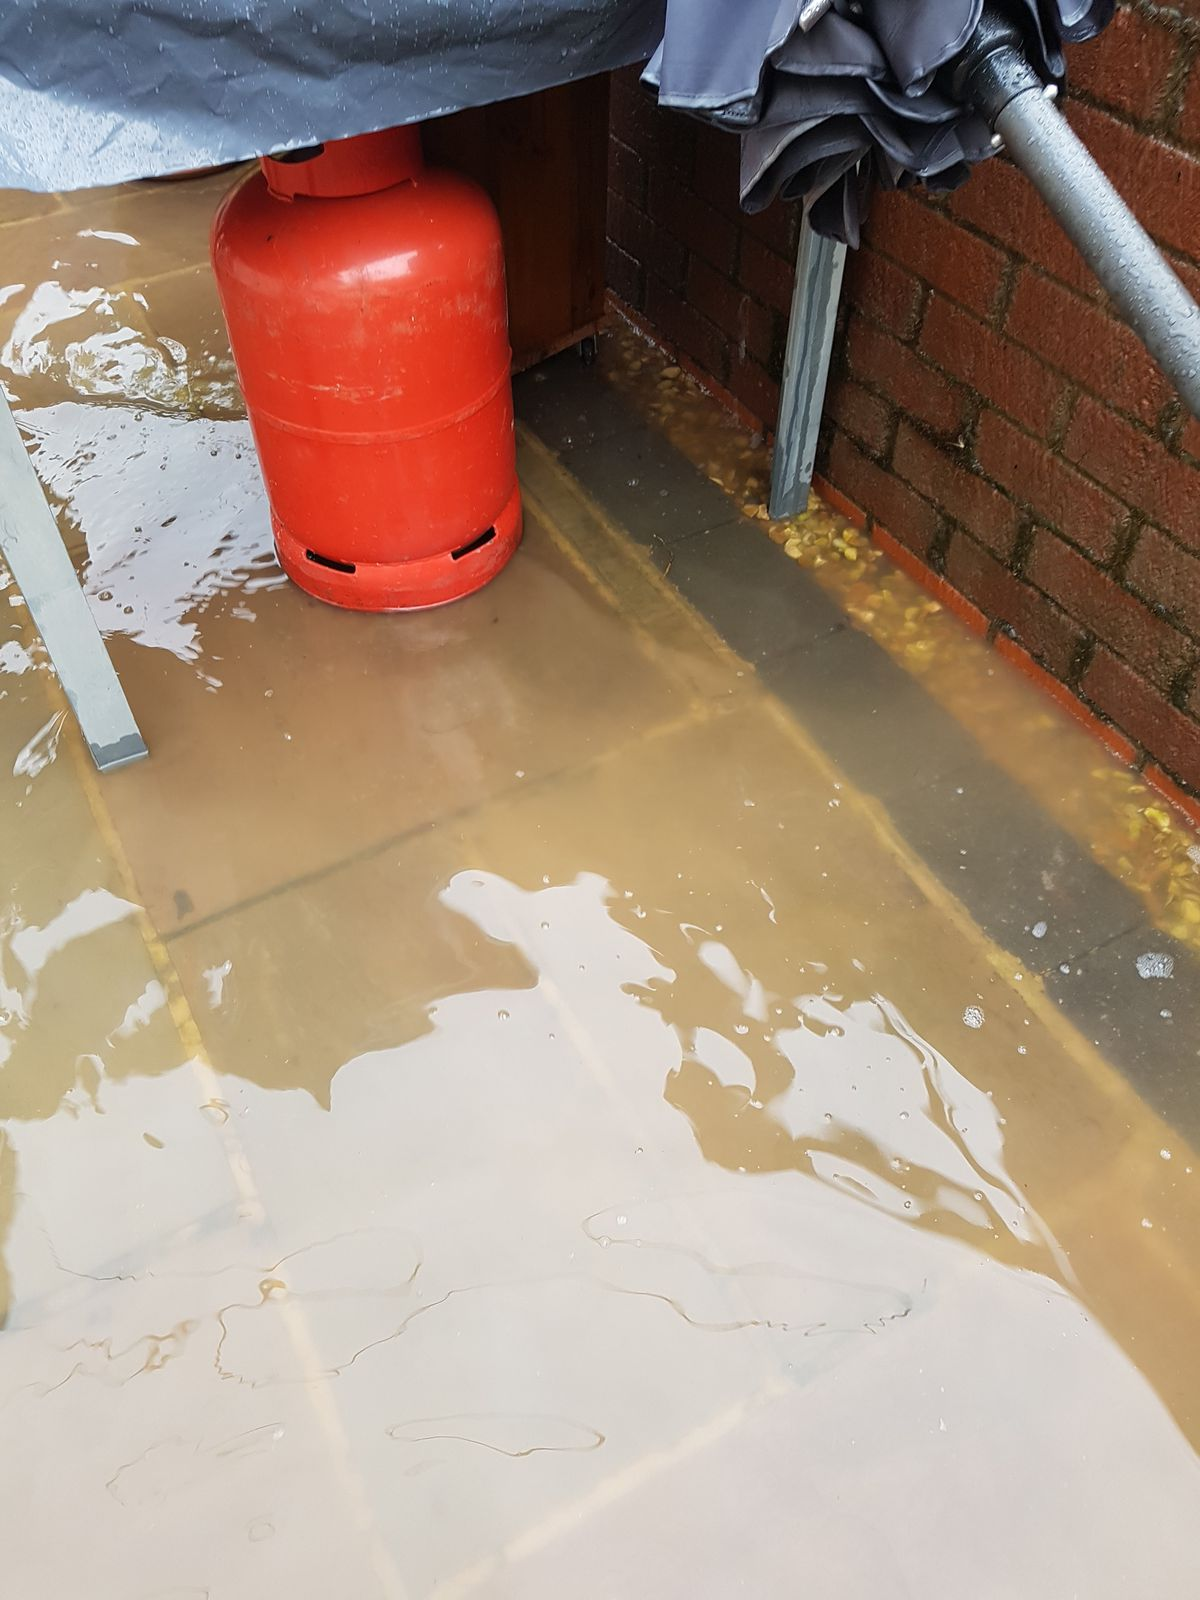 Severn Trent is assessing damage at homes following the sewage leak